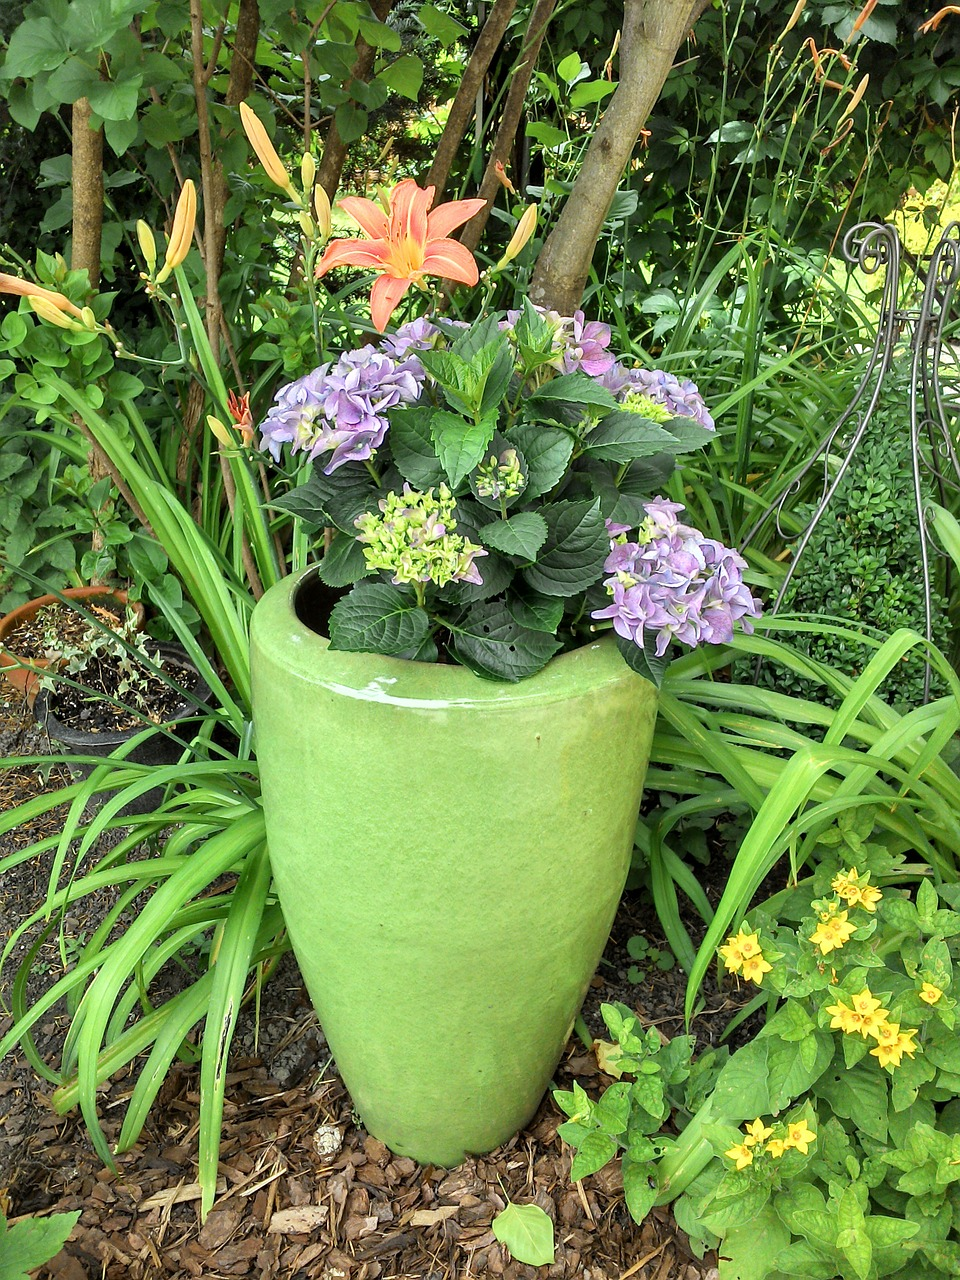 flowerpot,garden,flower vase,vase,flowers,bloom,purple,free pictures, free photos, free images, royalty free, free illustrations, public domain